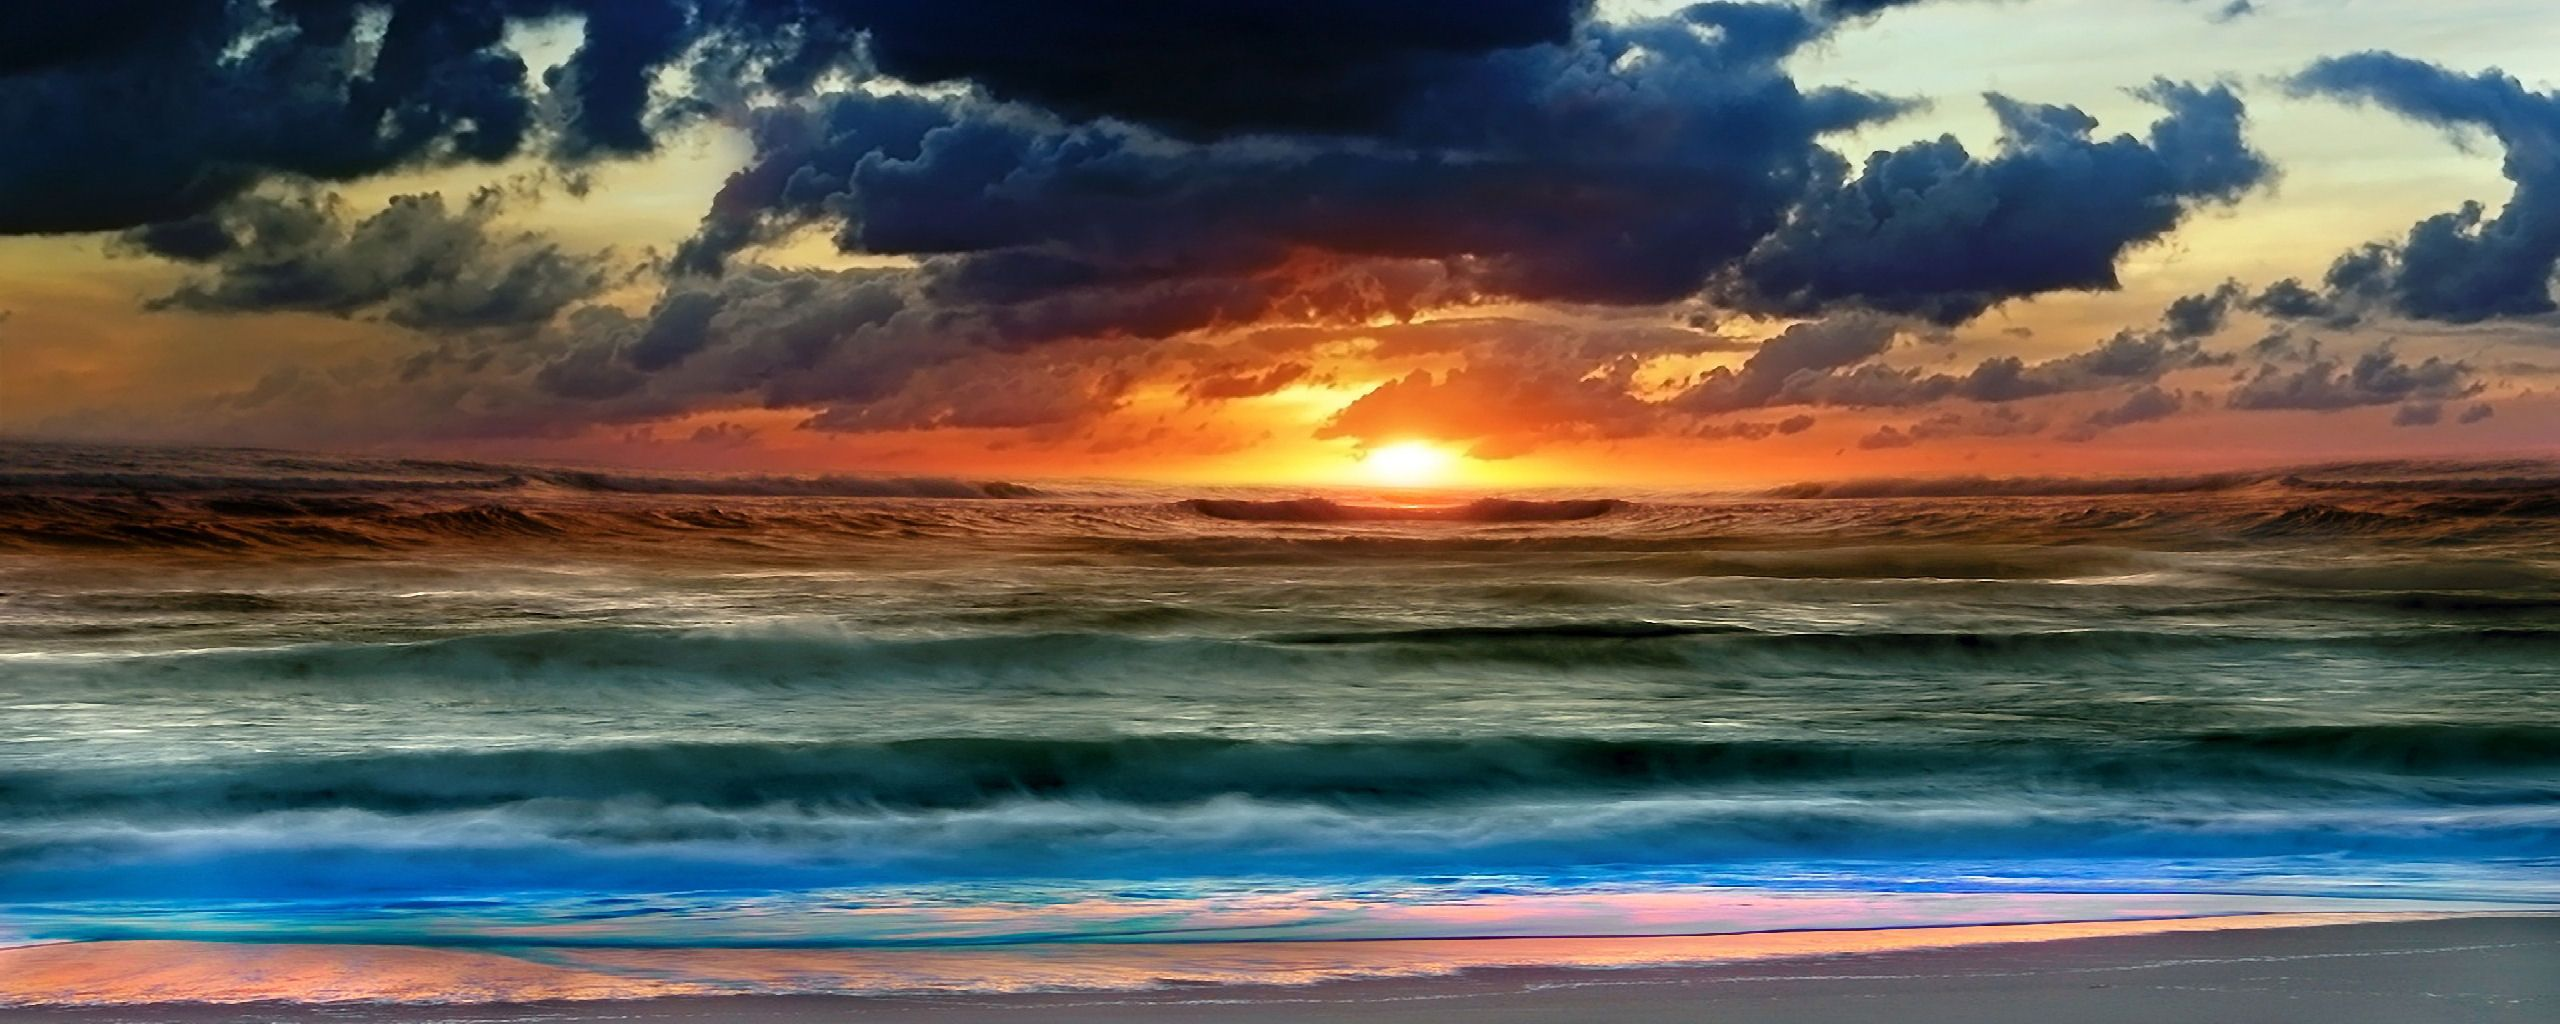 desktop backgrounds hd ocean - photo #31